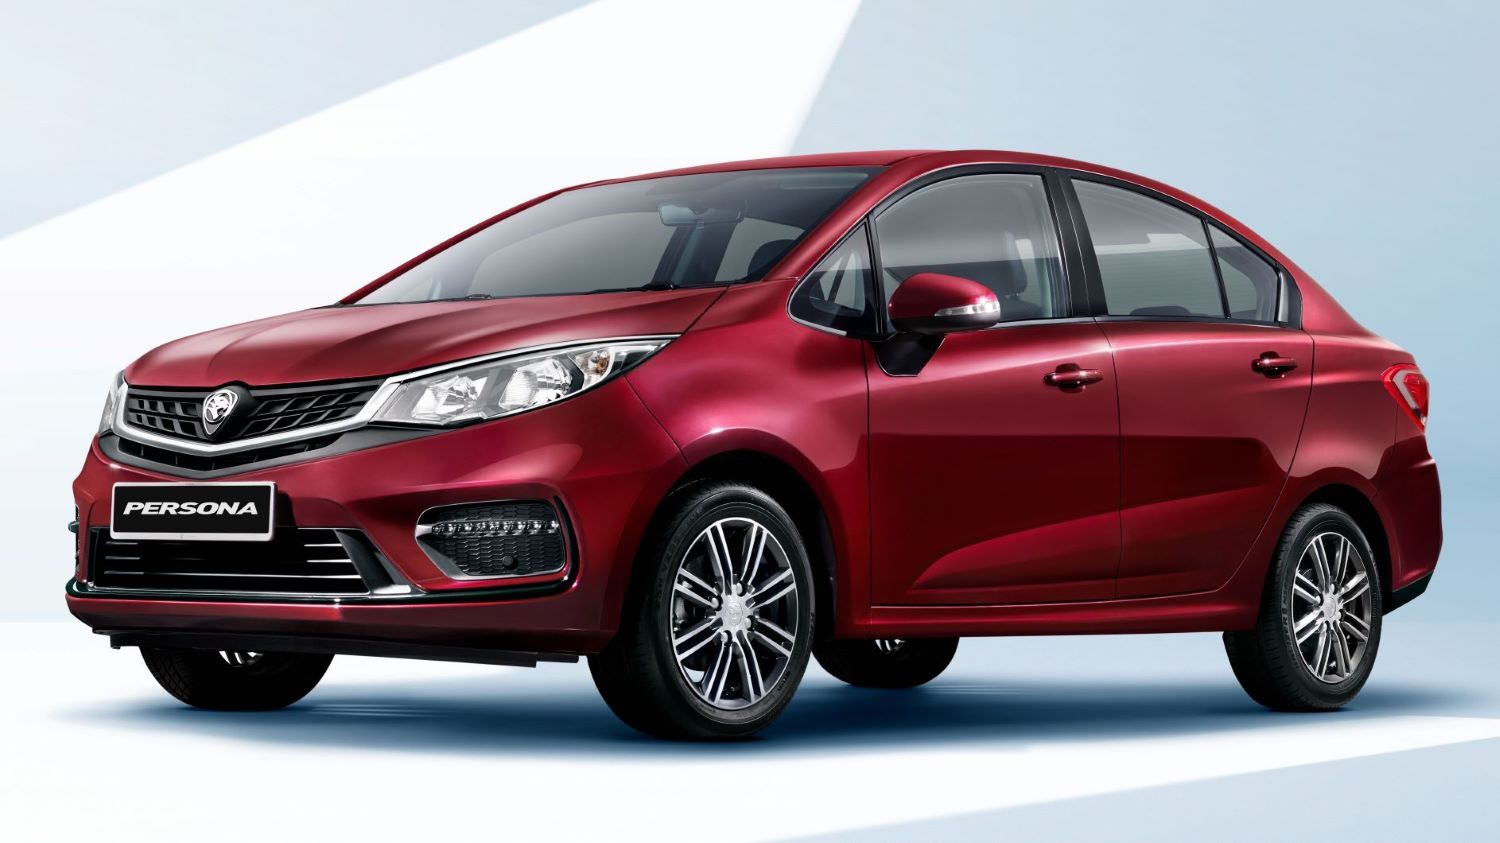 Proton sells 7,011 cars in April, in second spot for first